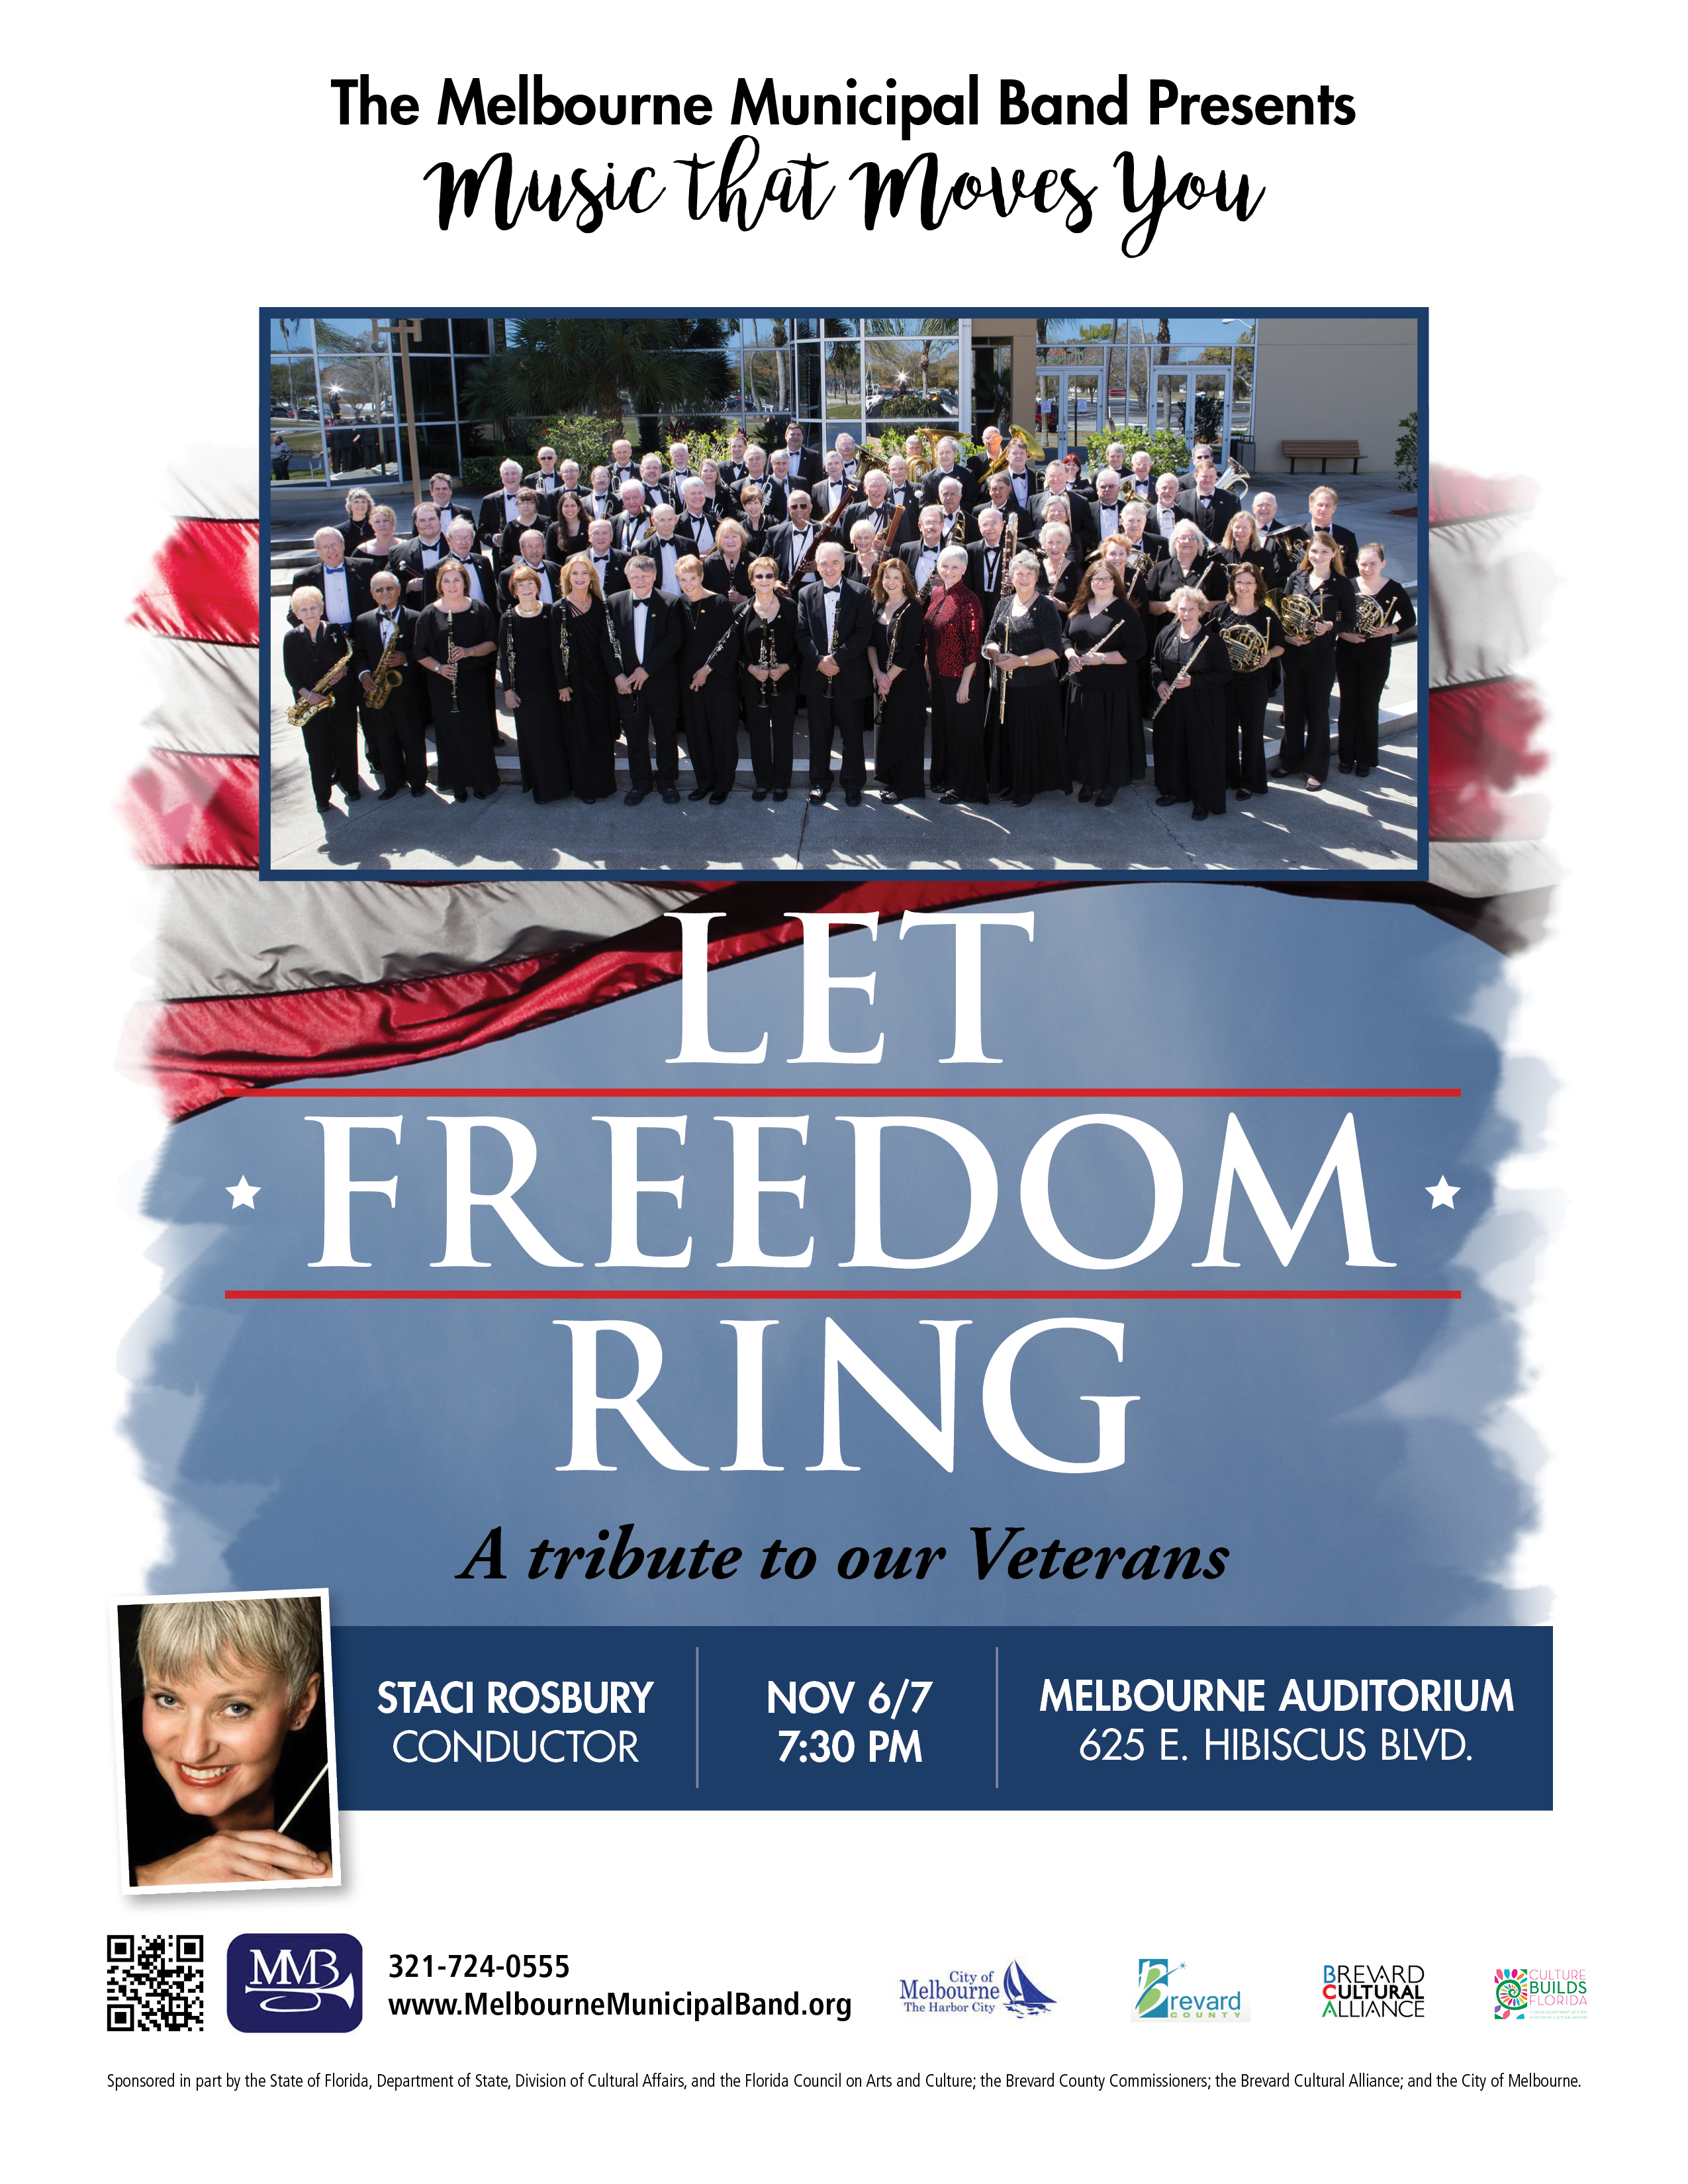 Let Freedom Ring presented by the Melbourne Municipal Band